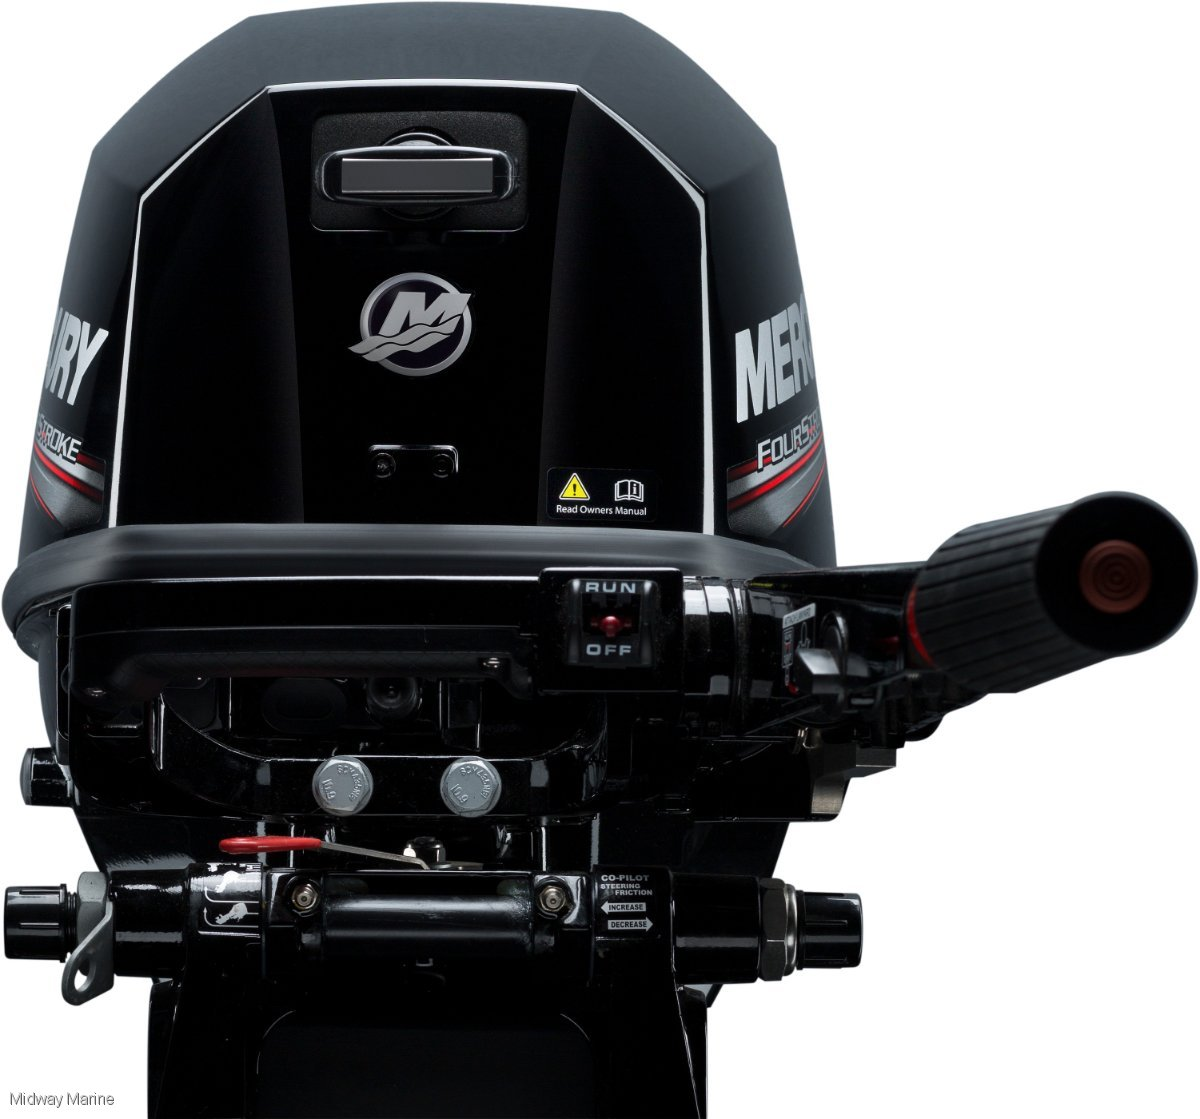 NEW MERCURY 9.9HP OUTBOARD